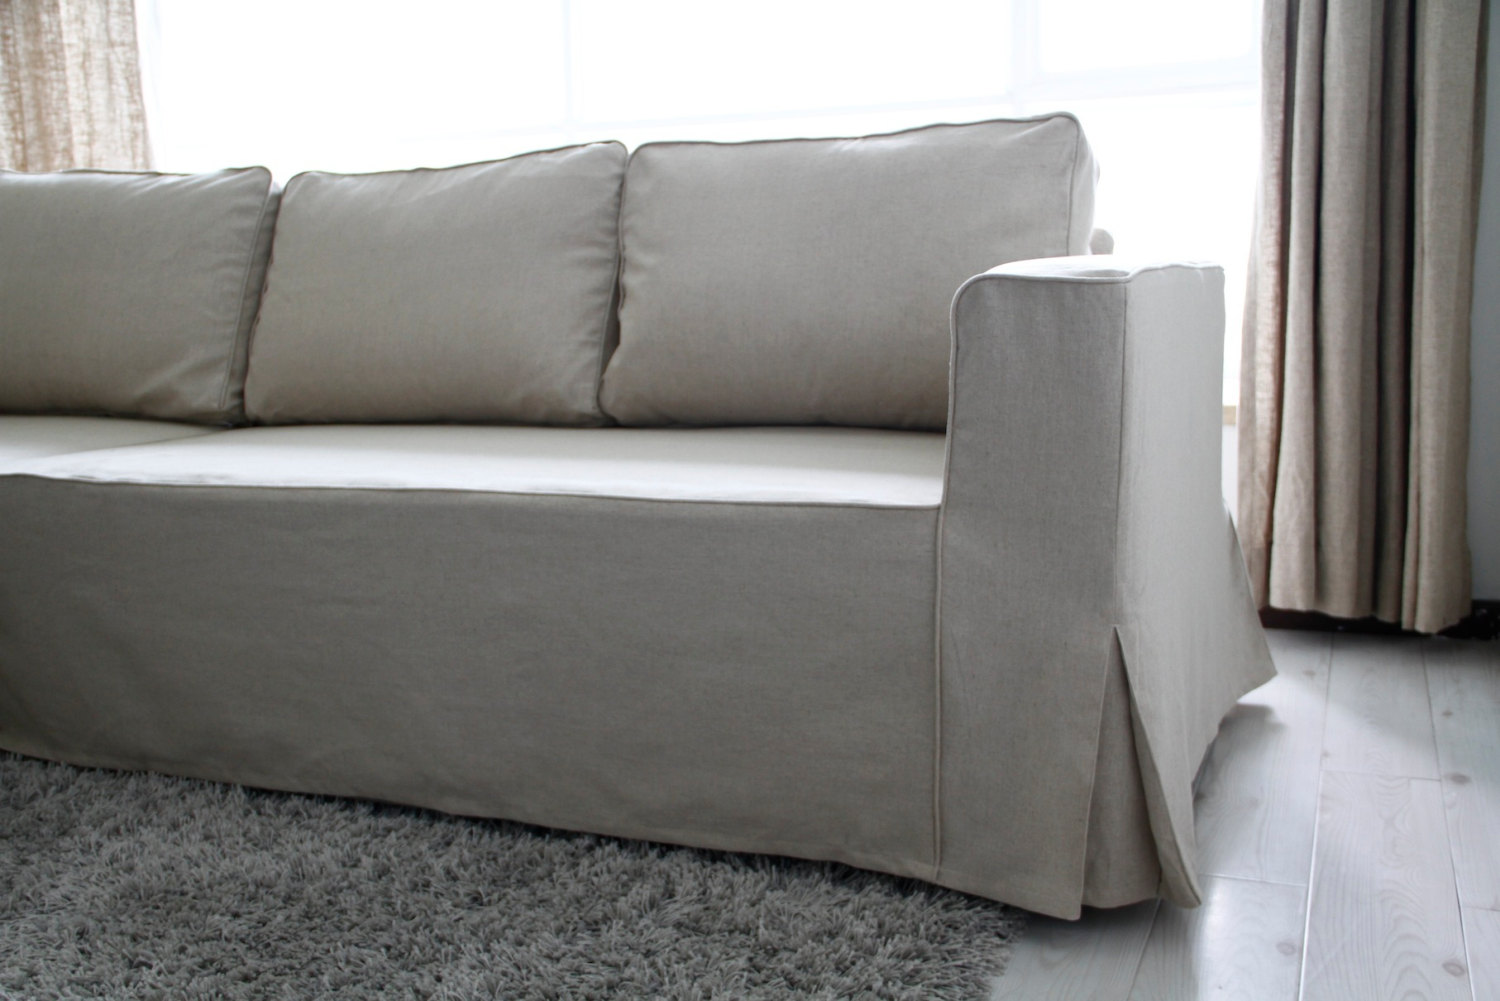 Recliner Couch Covers | Slipcovers for Sofas with Cushions Separate | Slipcovers for Couches